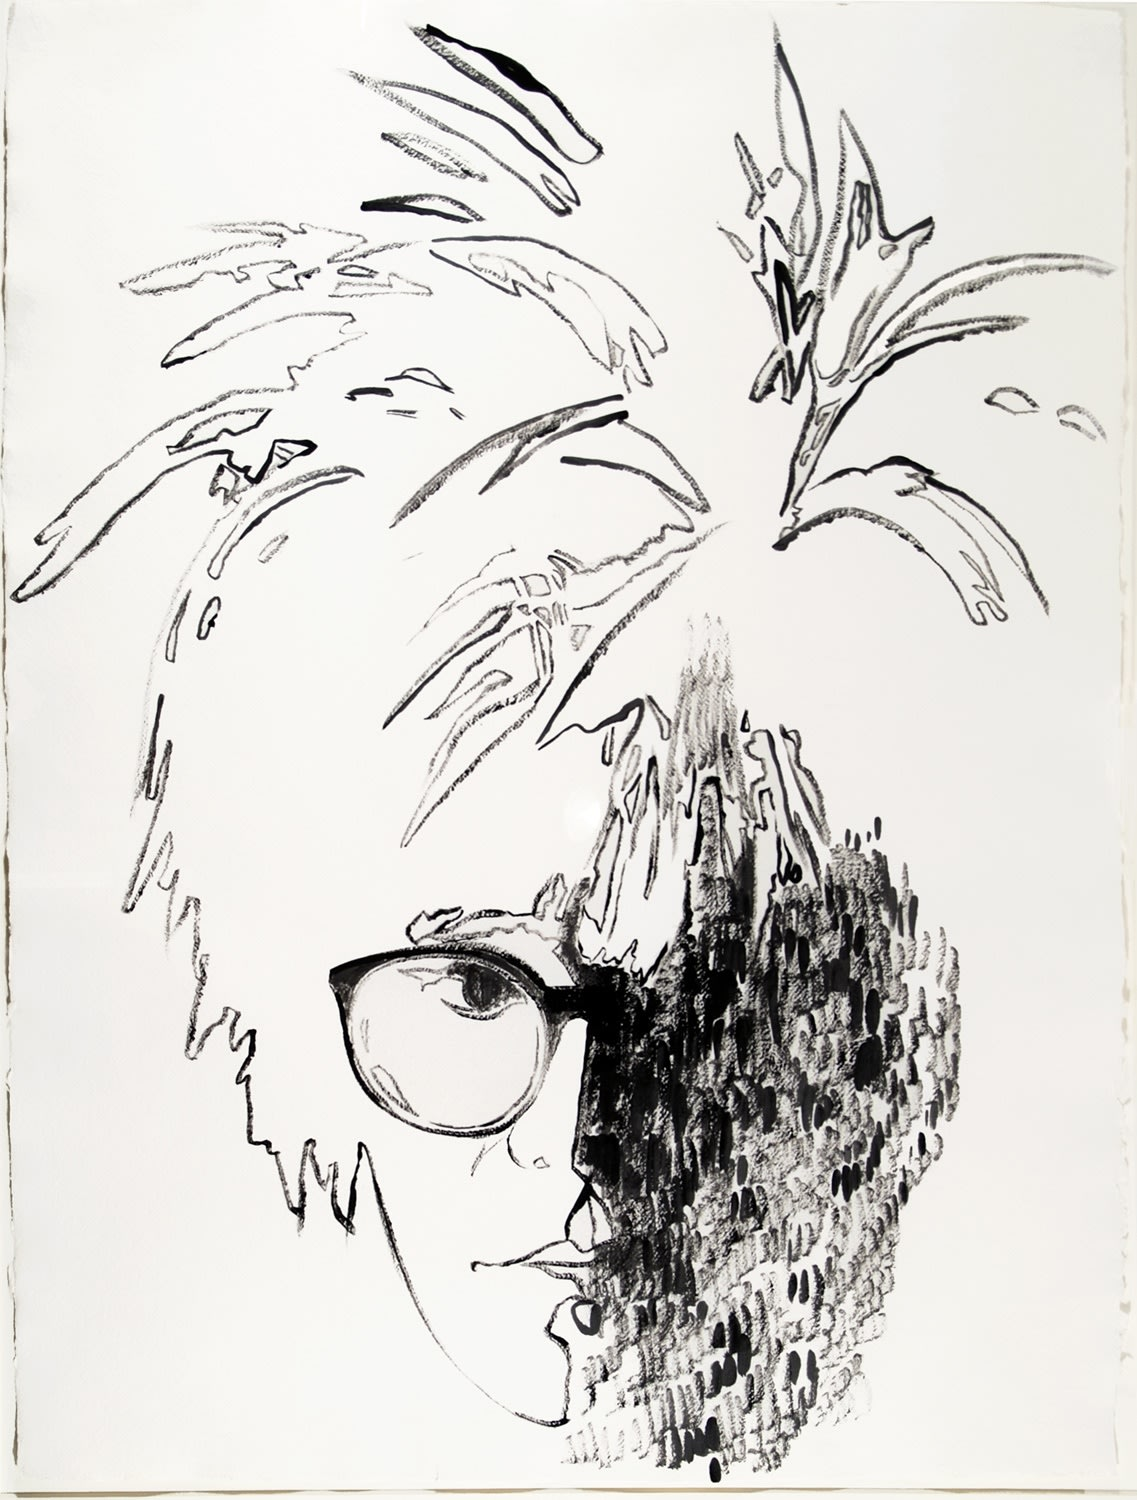 Andy Warhol Drawings to Show at New York Academy of Art